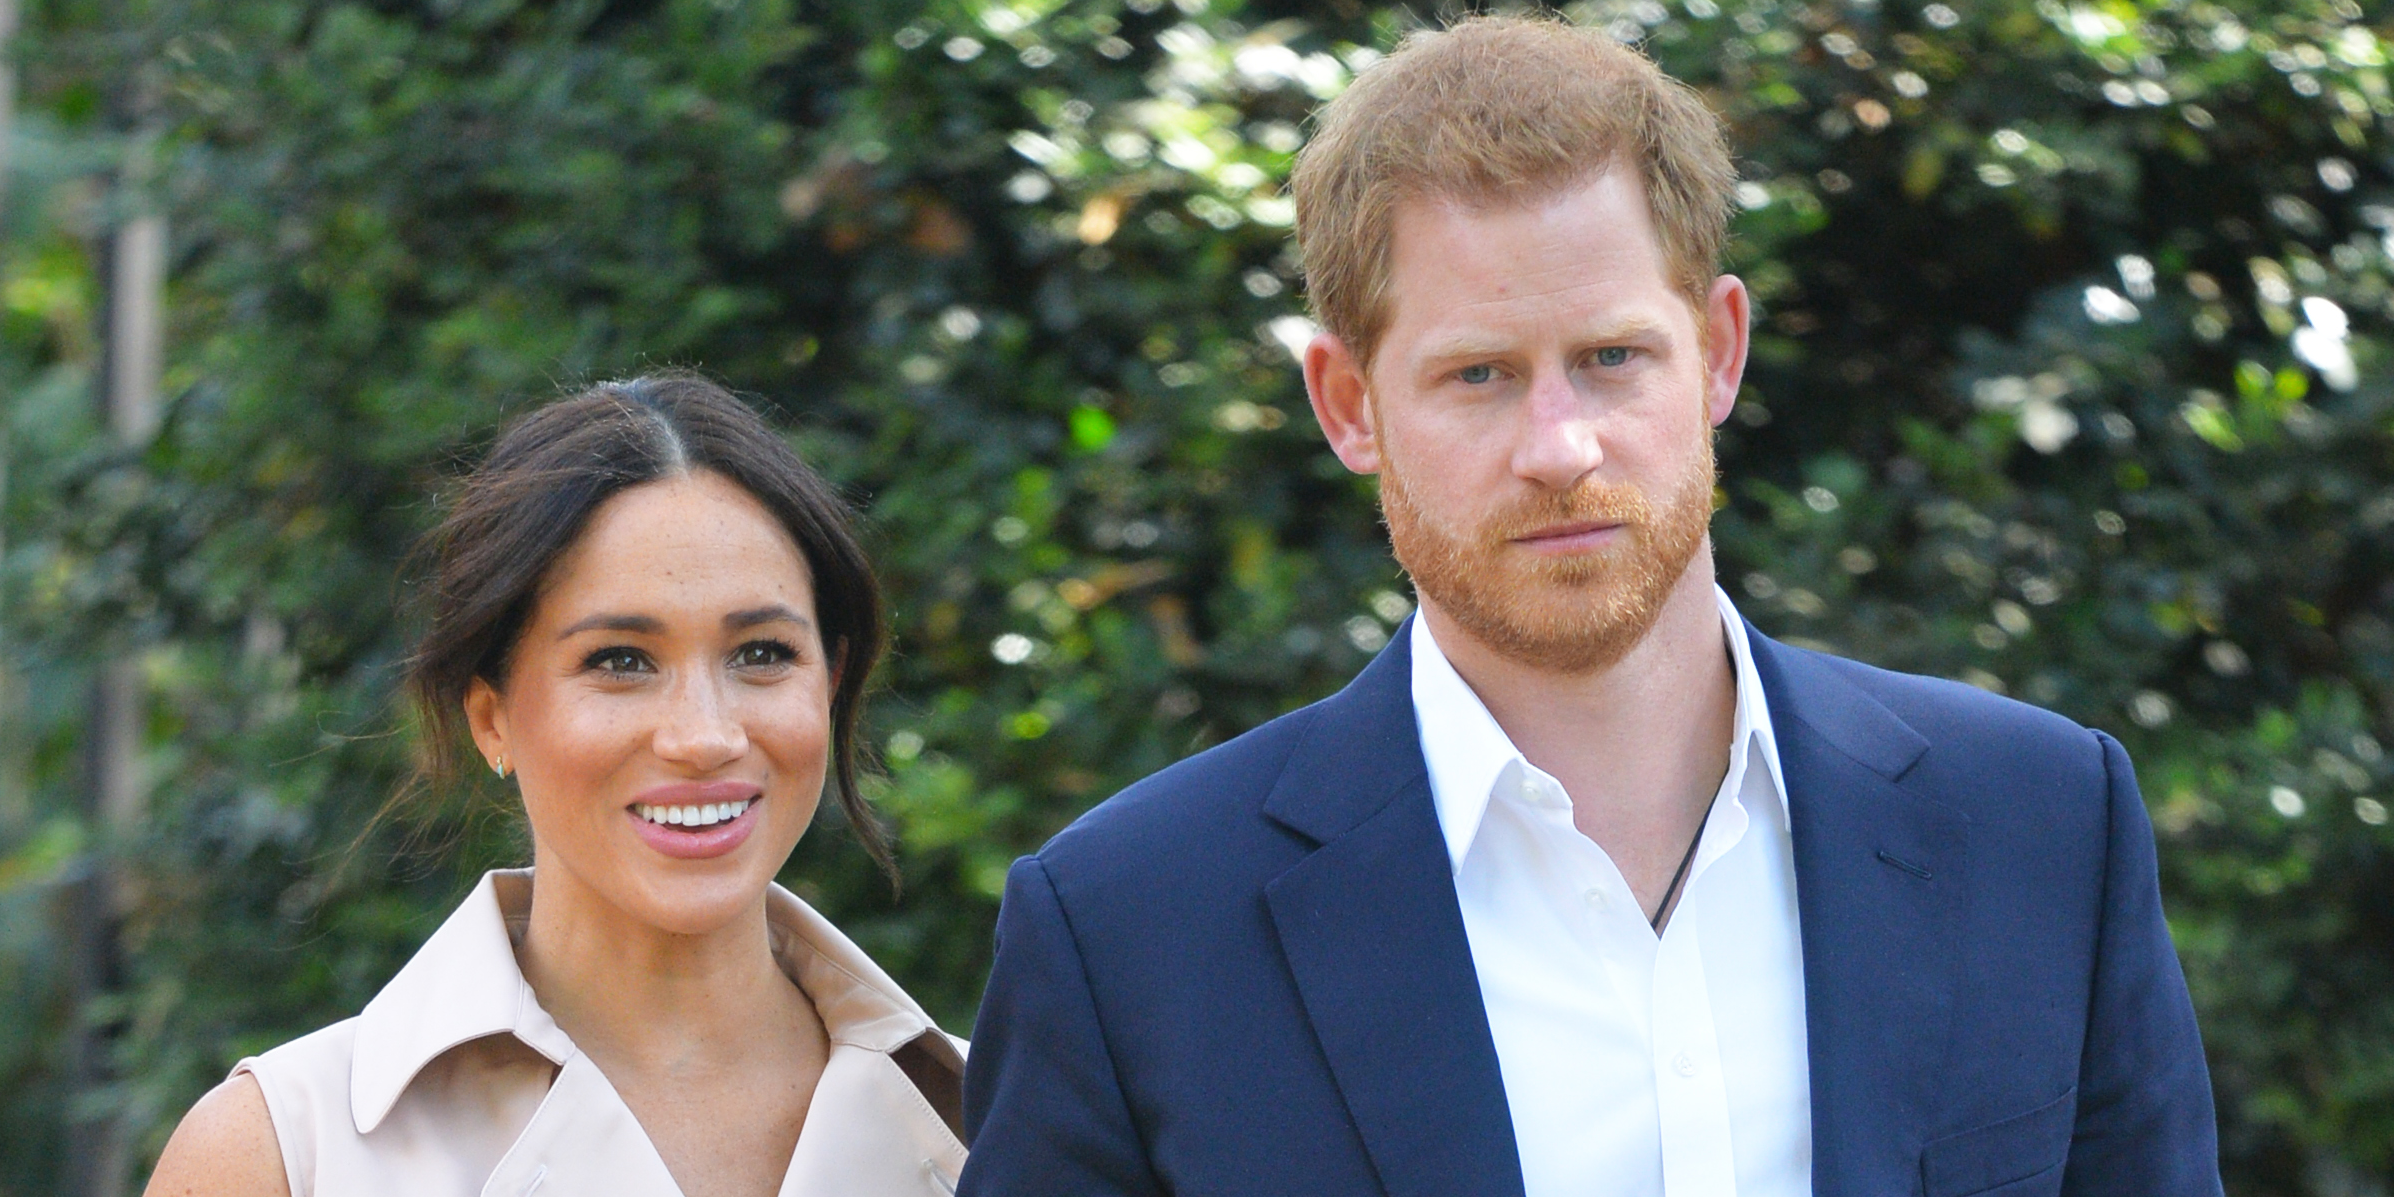 Harry and Meghan confirmed they will not use 'royal' in their branding and shared their transition plan step down from the royal family